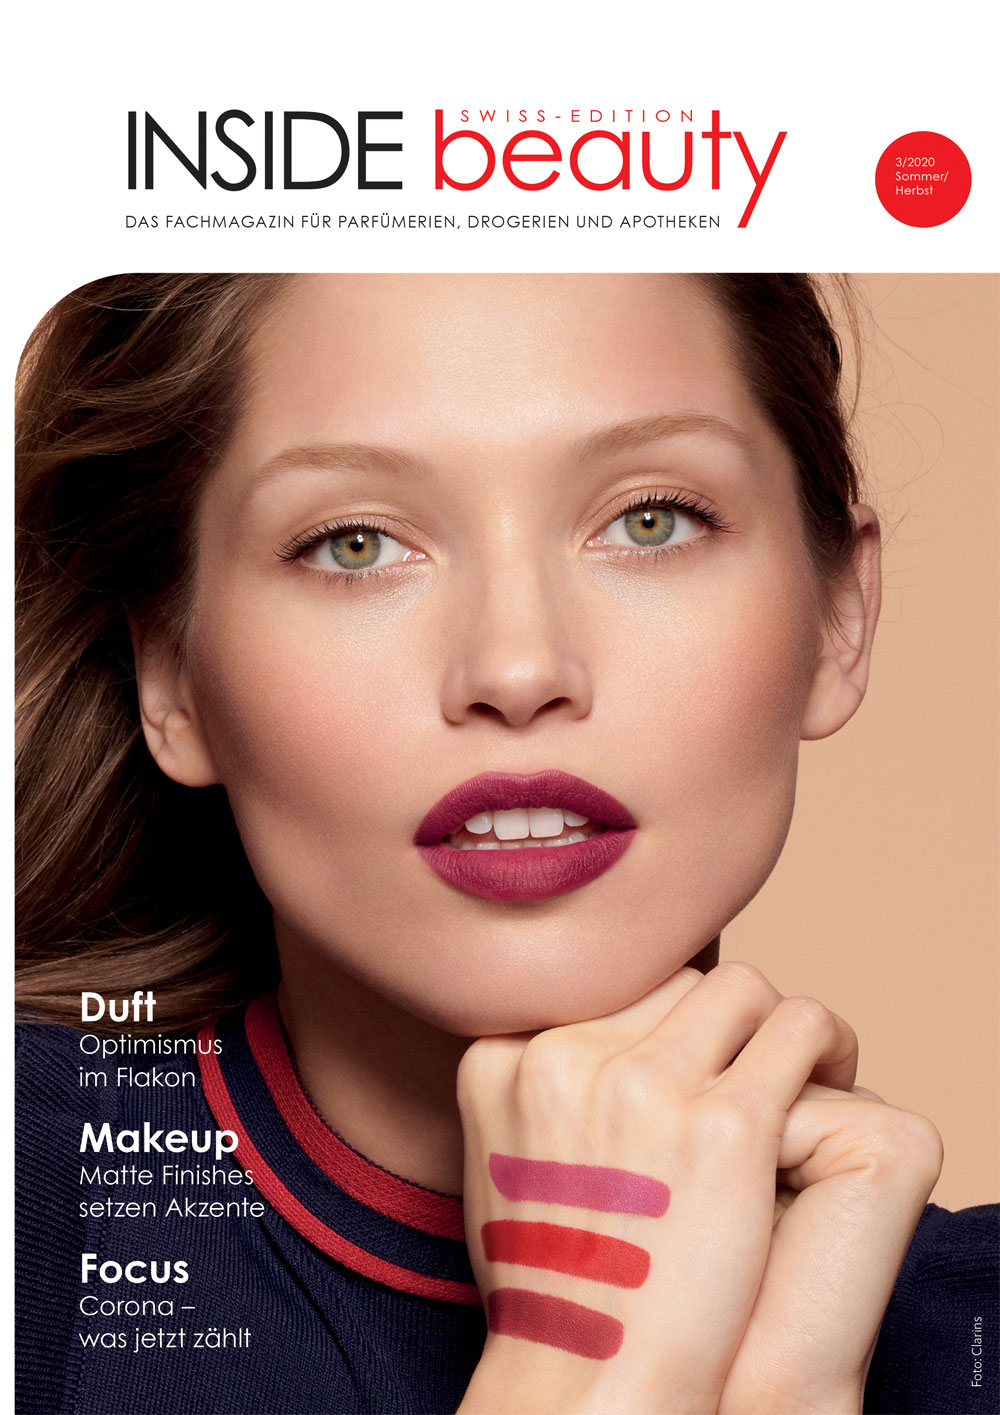 INSIDE beauty Swiss - Ausgabe 03/2020